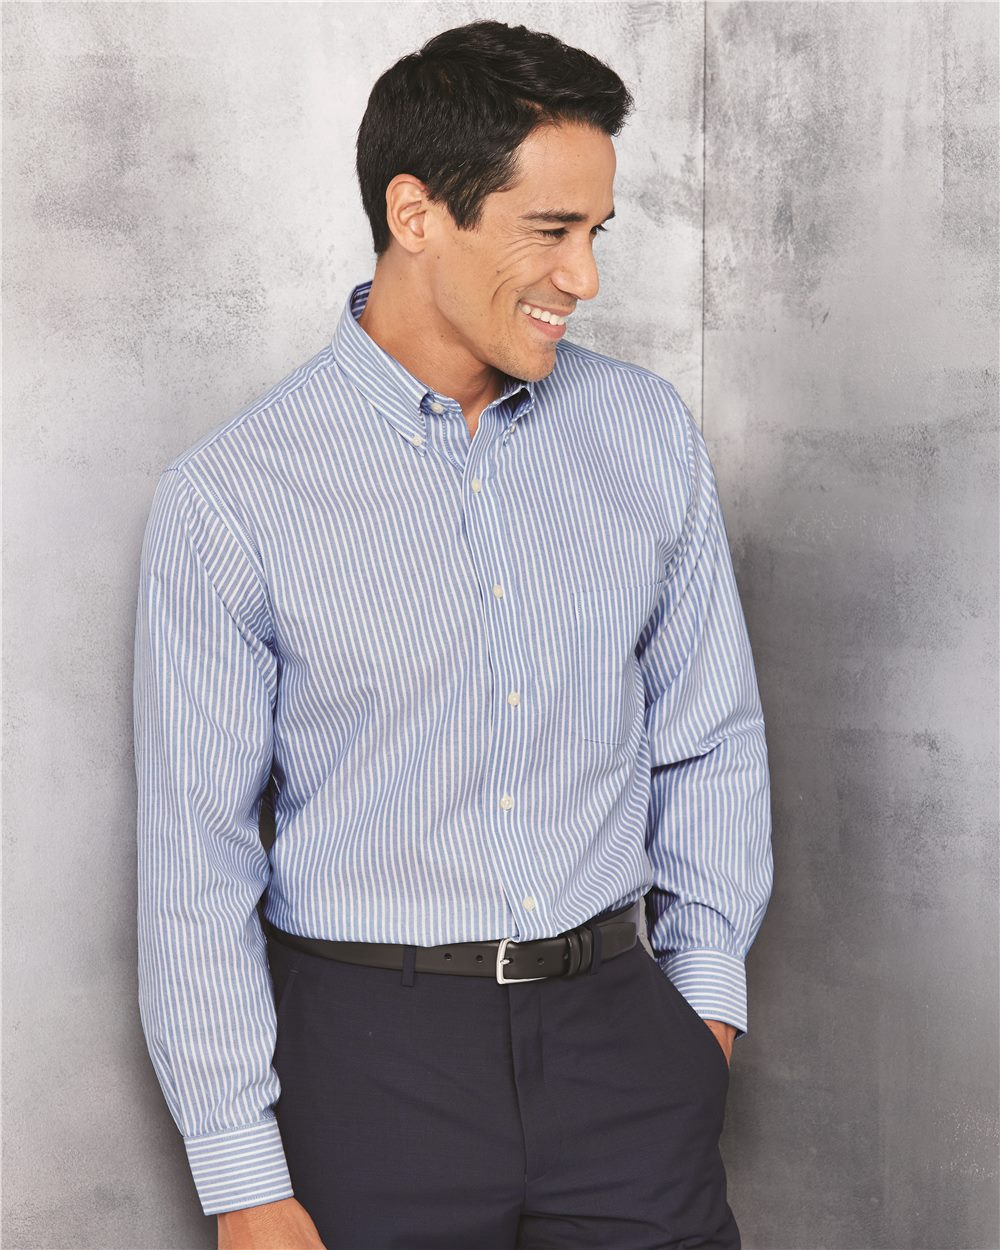 Van Heusen 13V0040 Long Sleeve Oxford